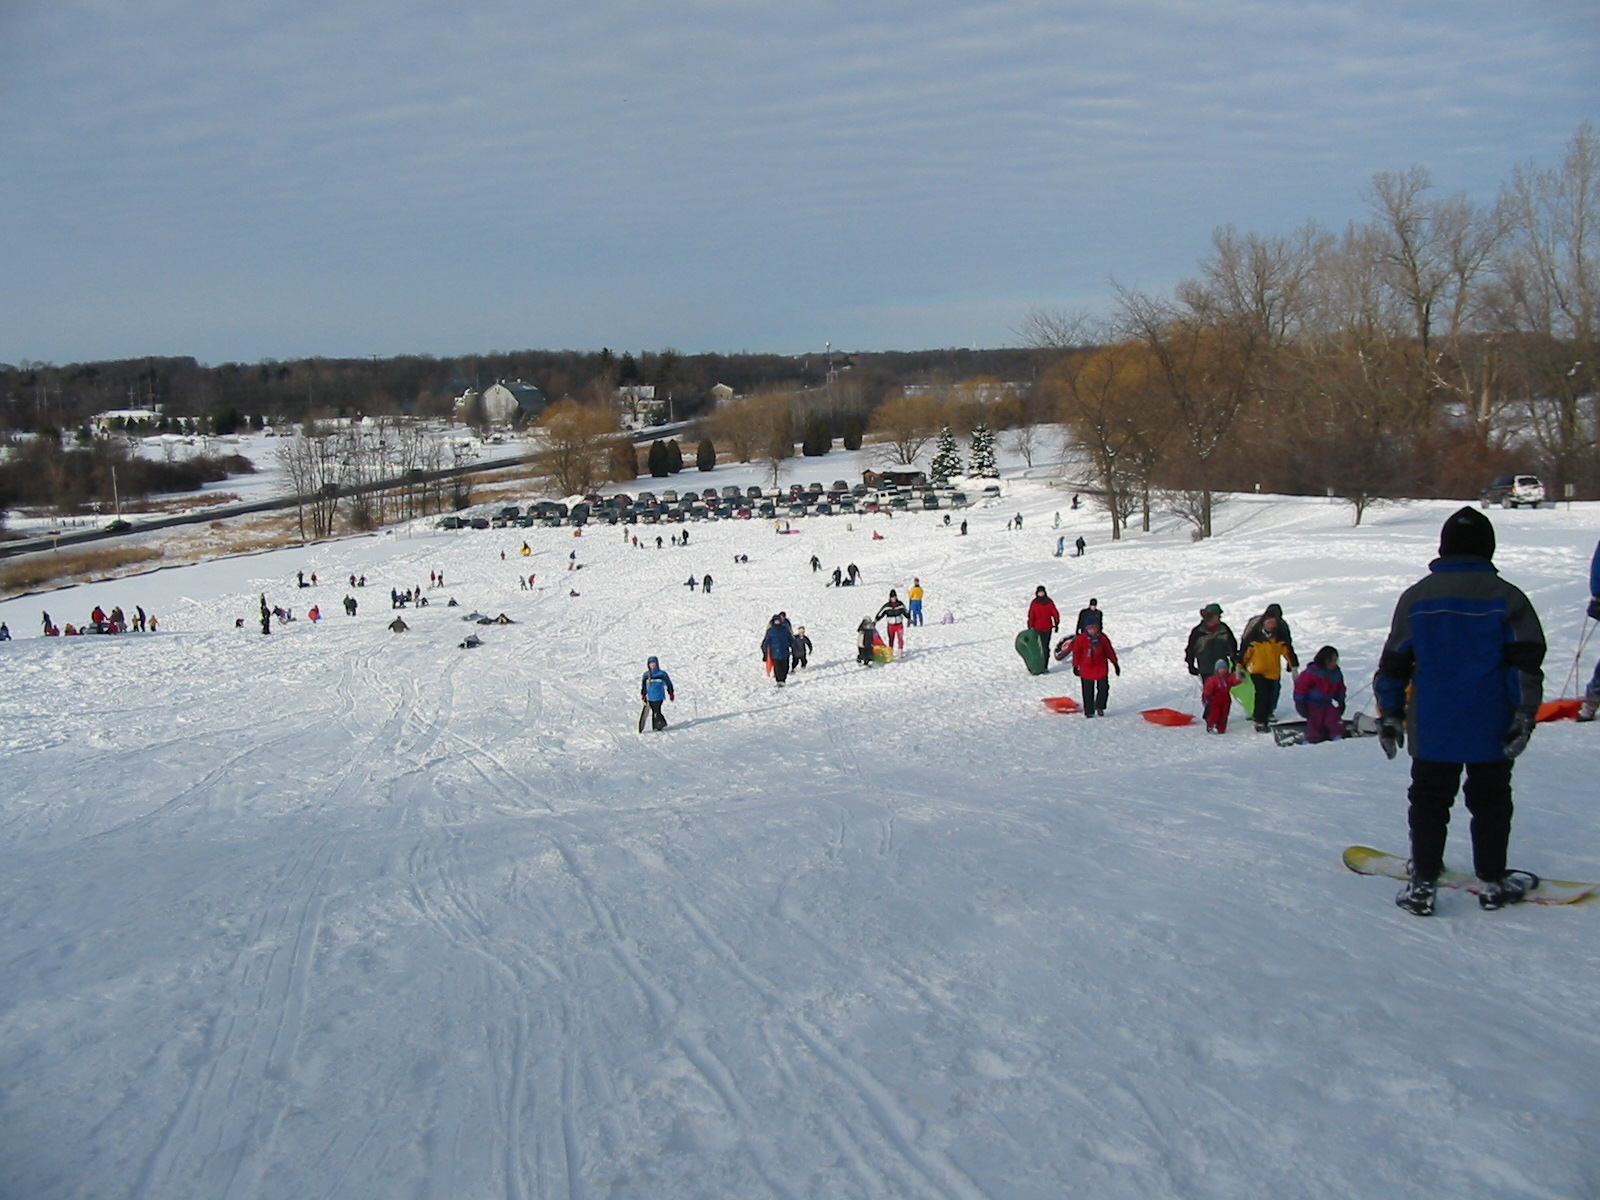 Sledding at MeeKwon Park